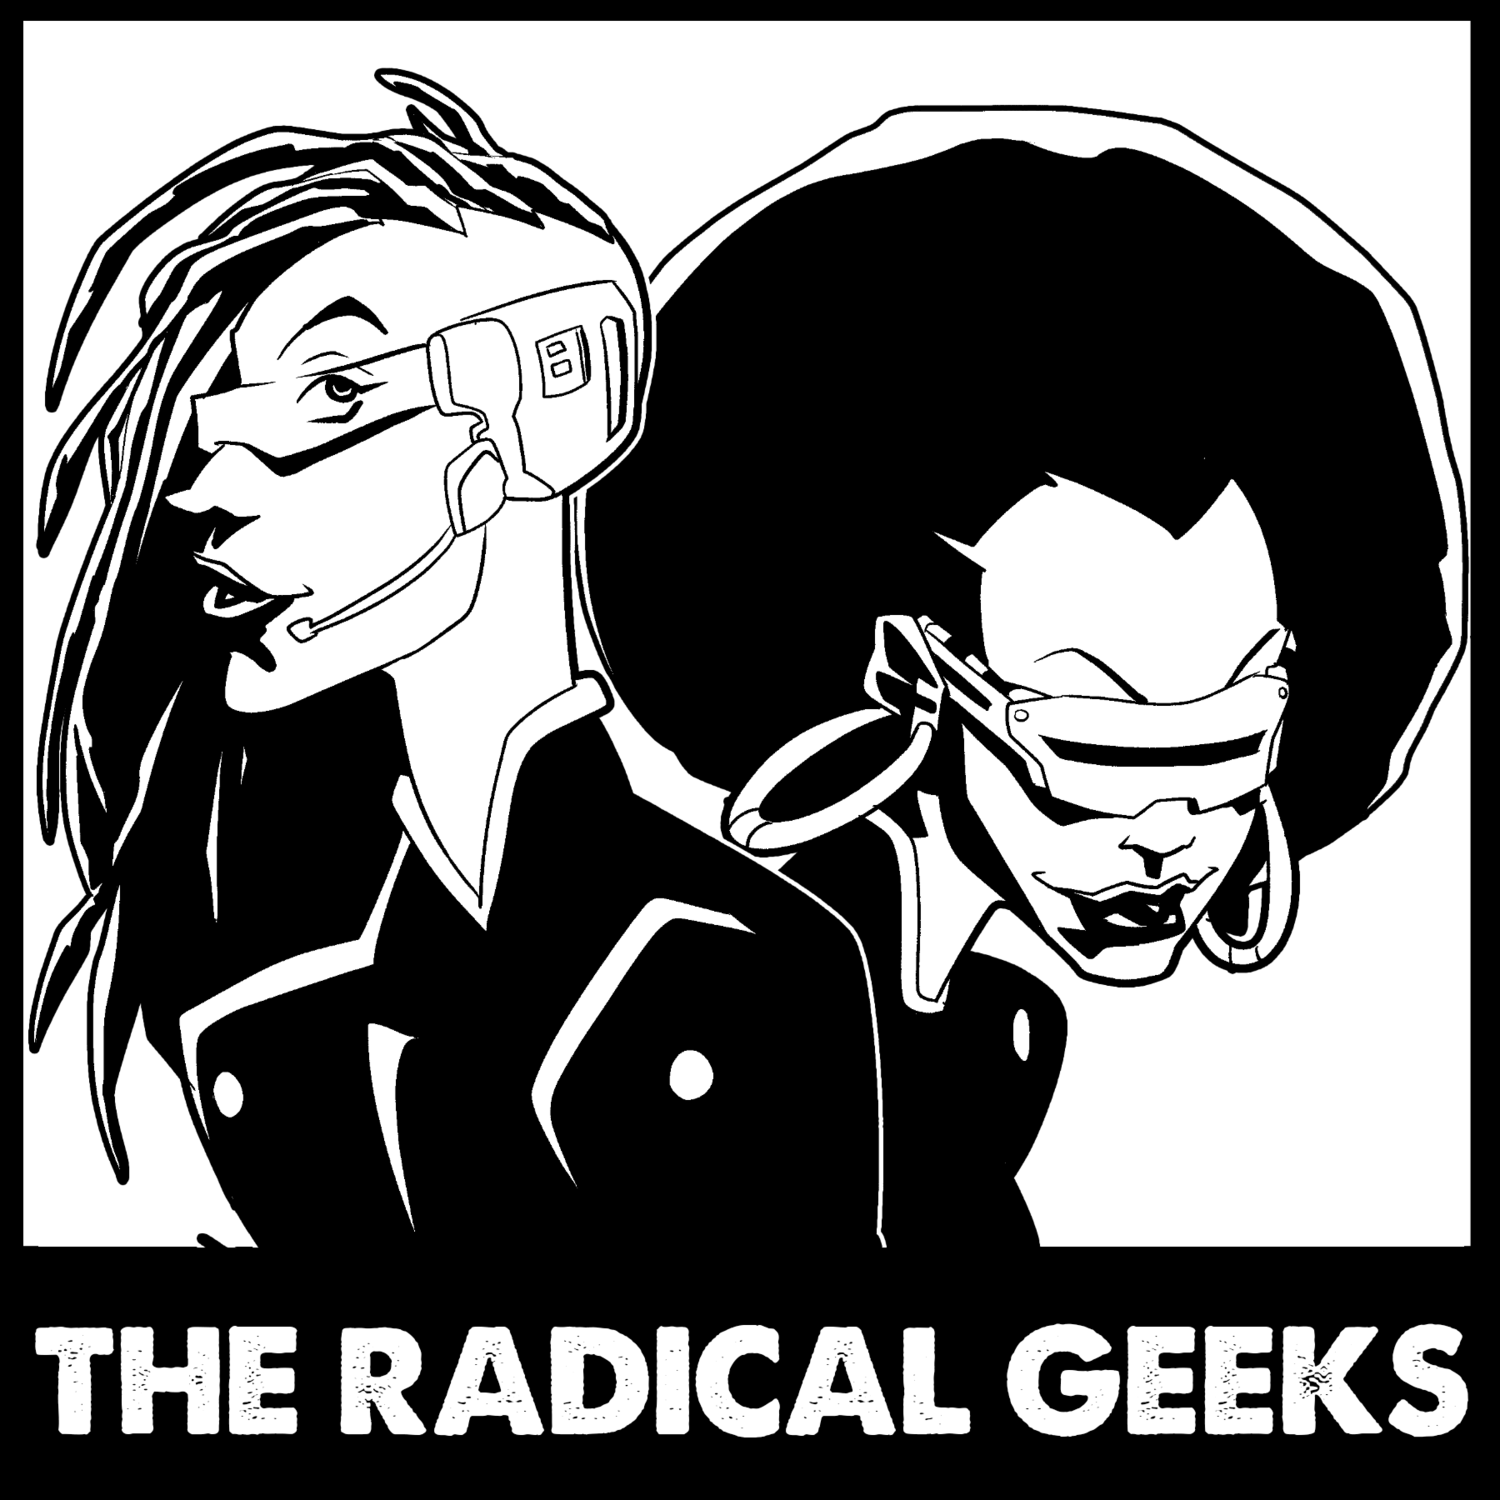 The Radical Geeks